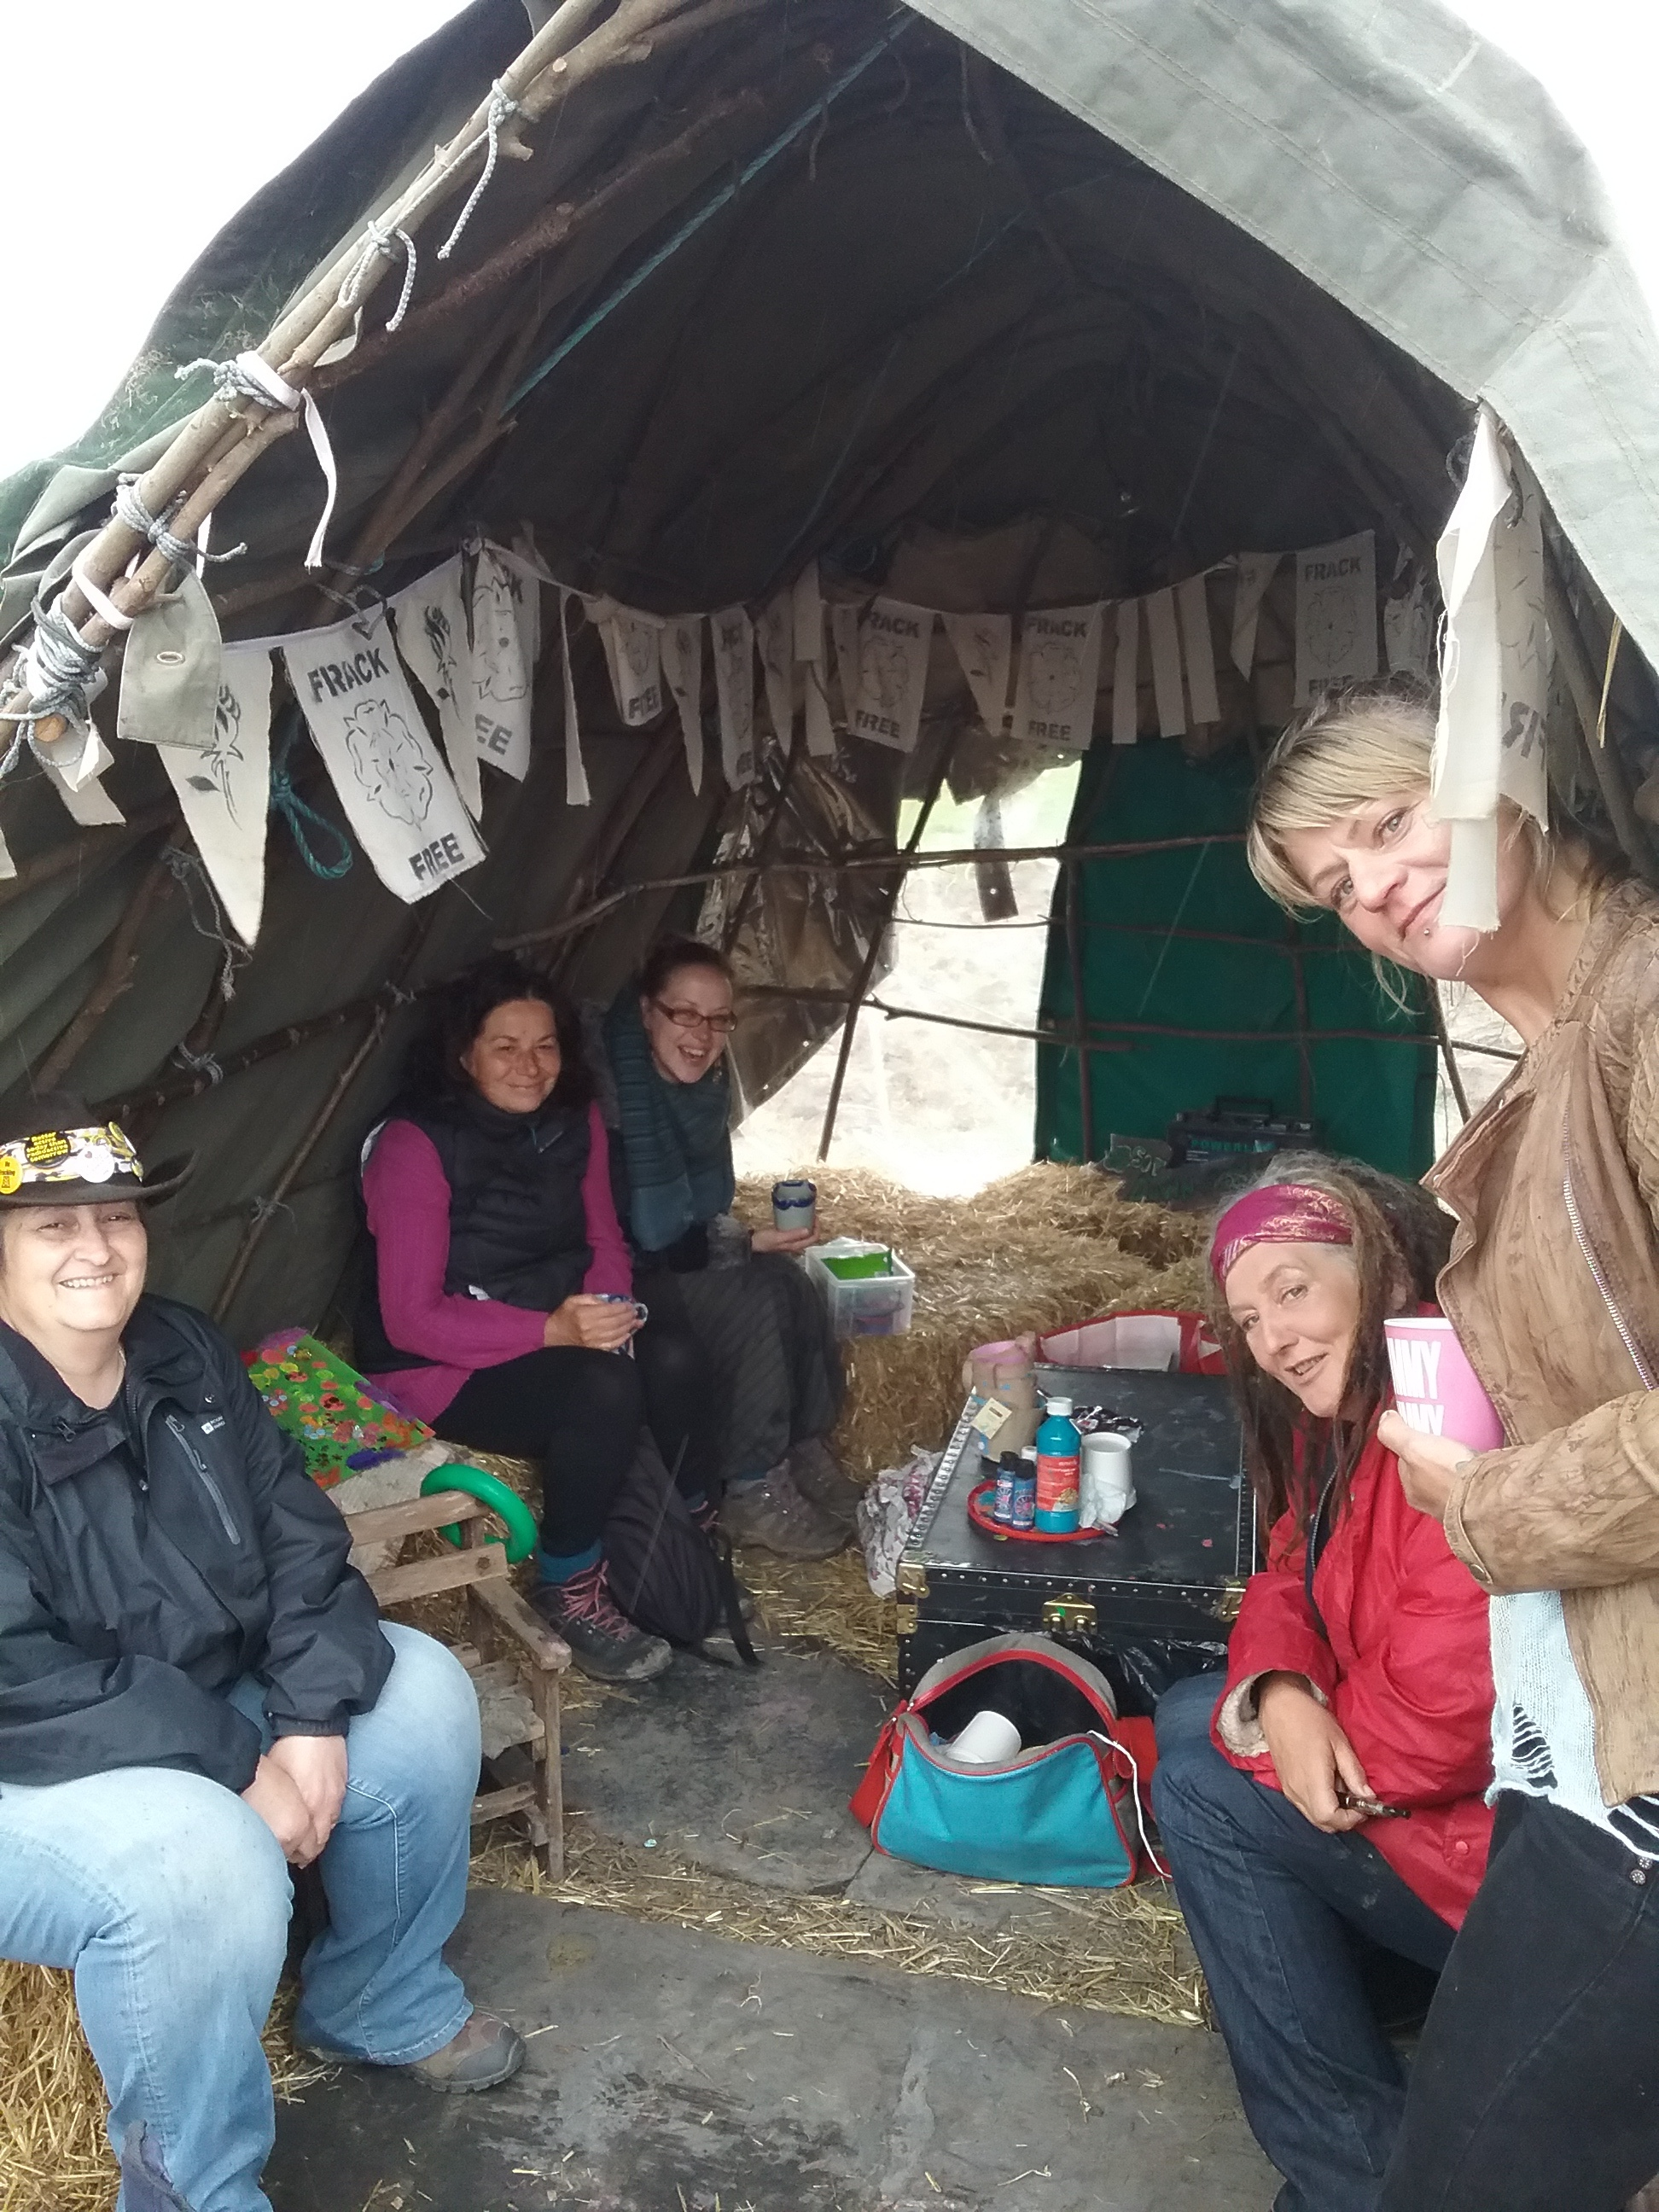 Committed anti-franking campaigners brave the conditions in the camp